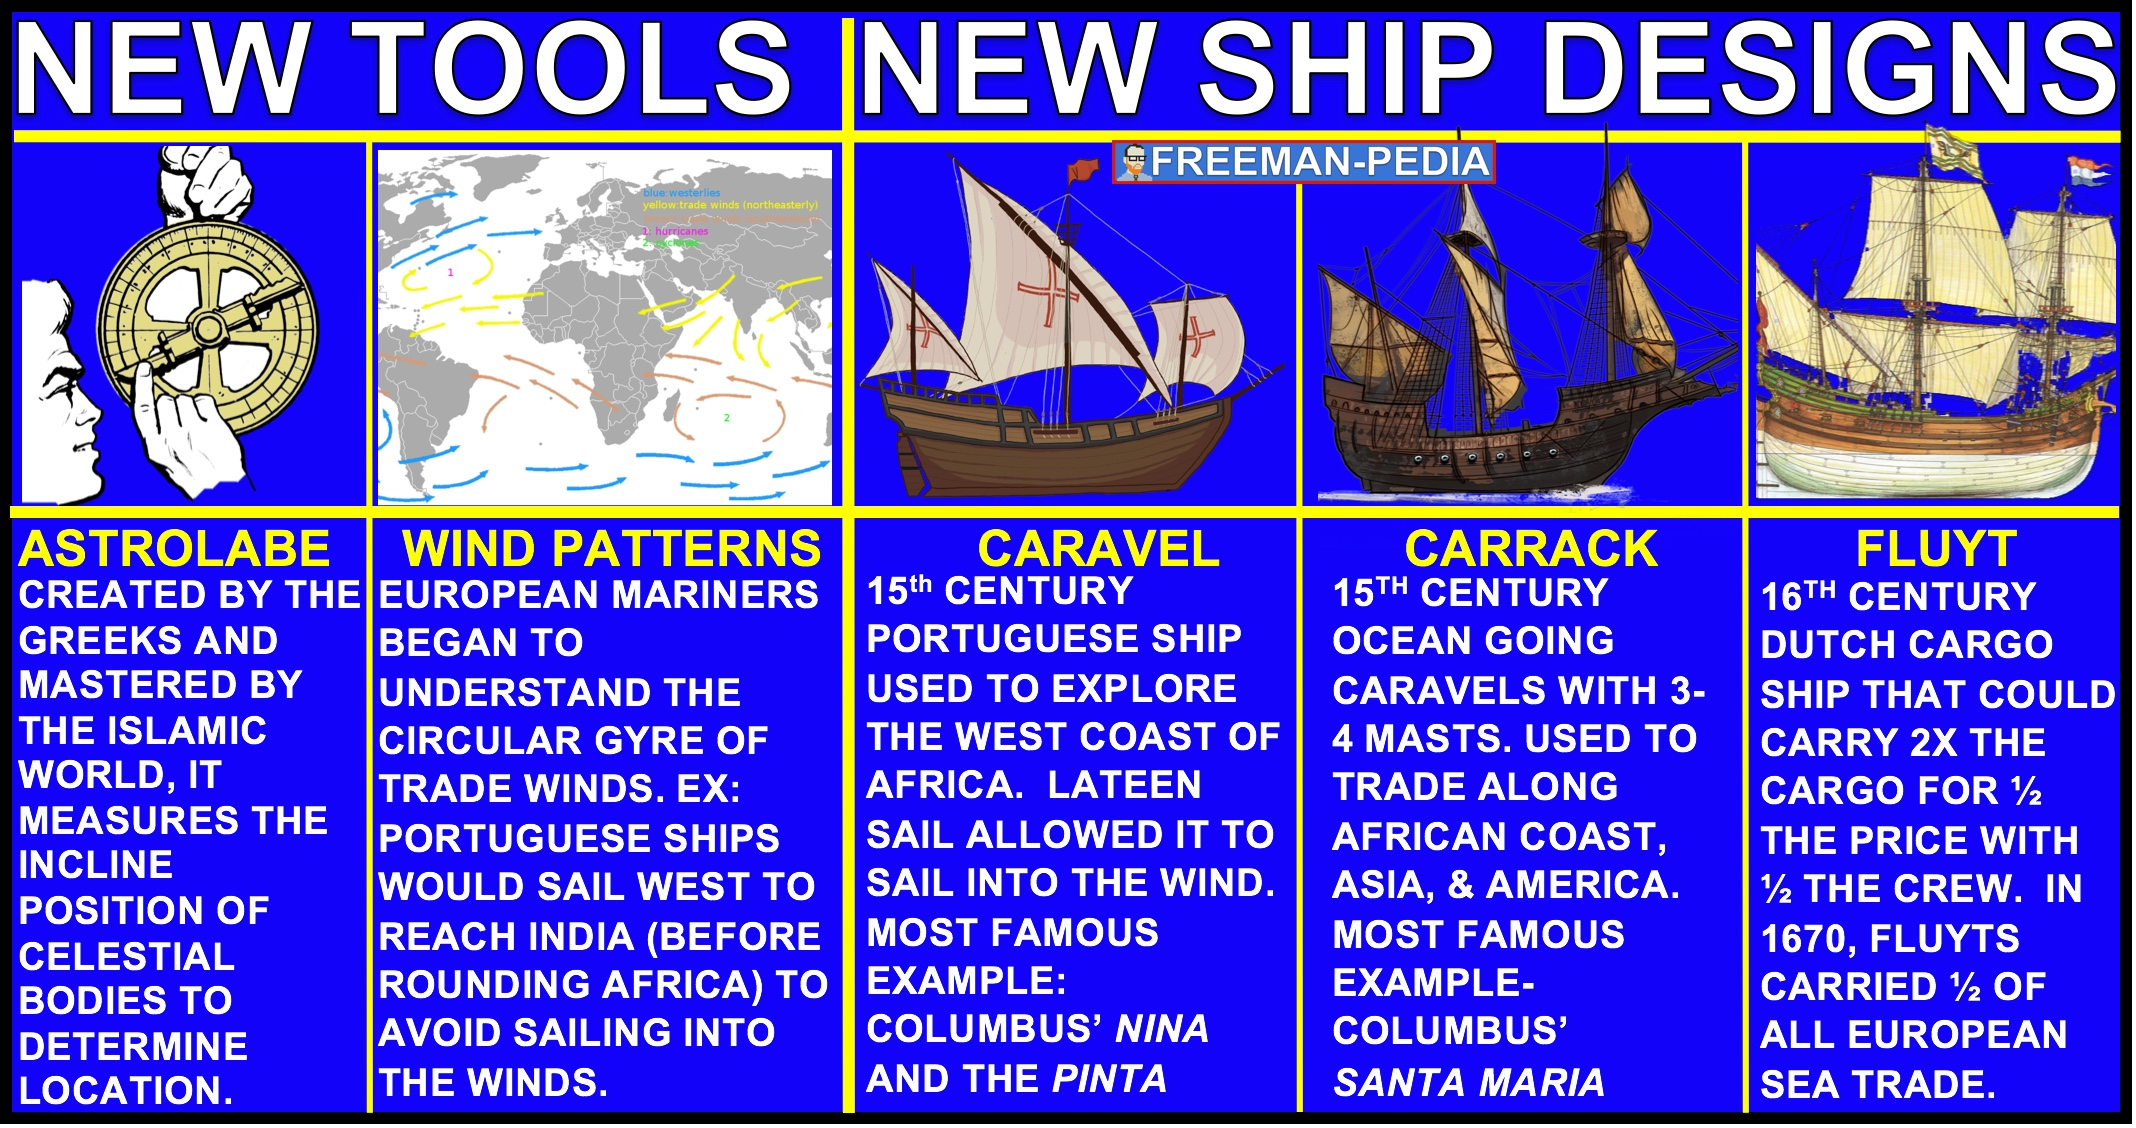 A. The developments included the production of new tools, innovations in ship designs, and an improved understanding of global wind and current patterns--all of which made transoceanic travel and trade possible.